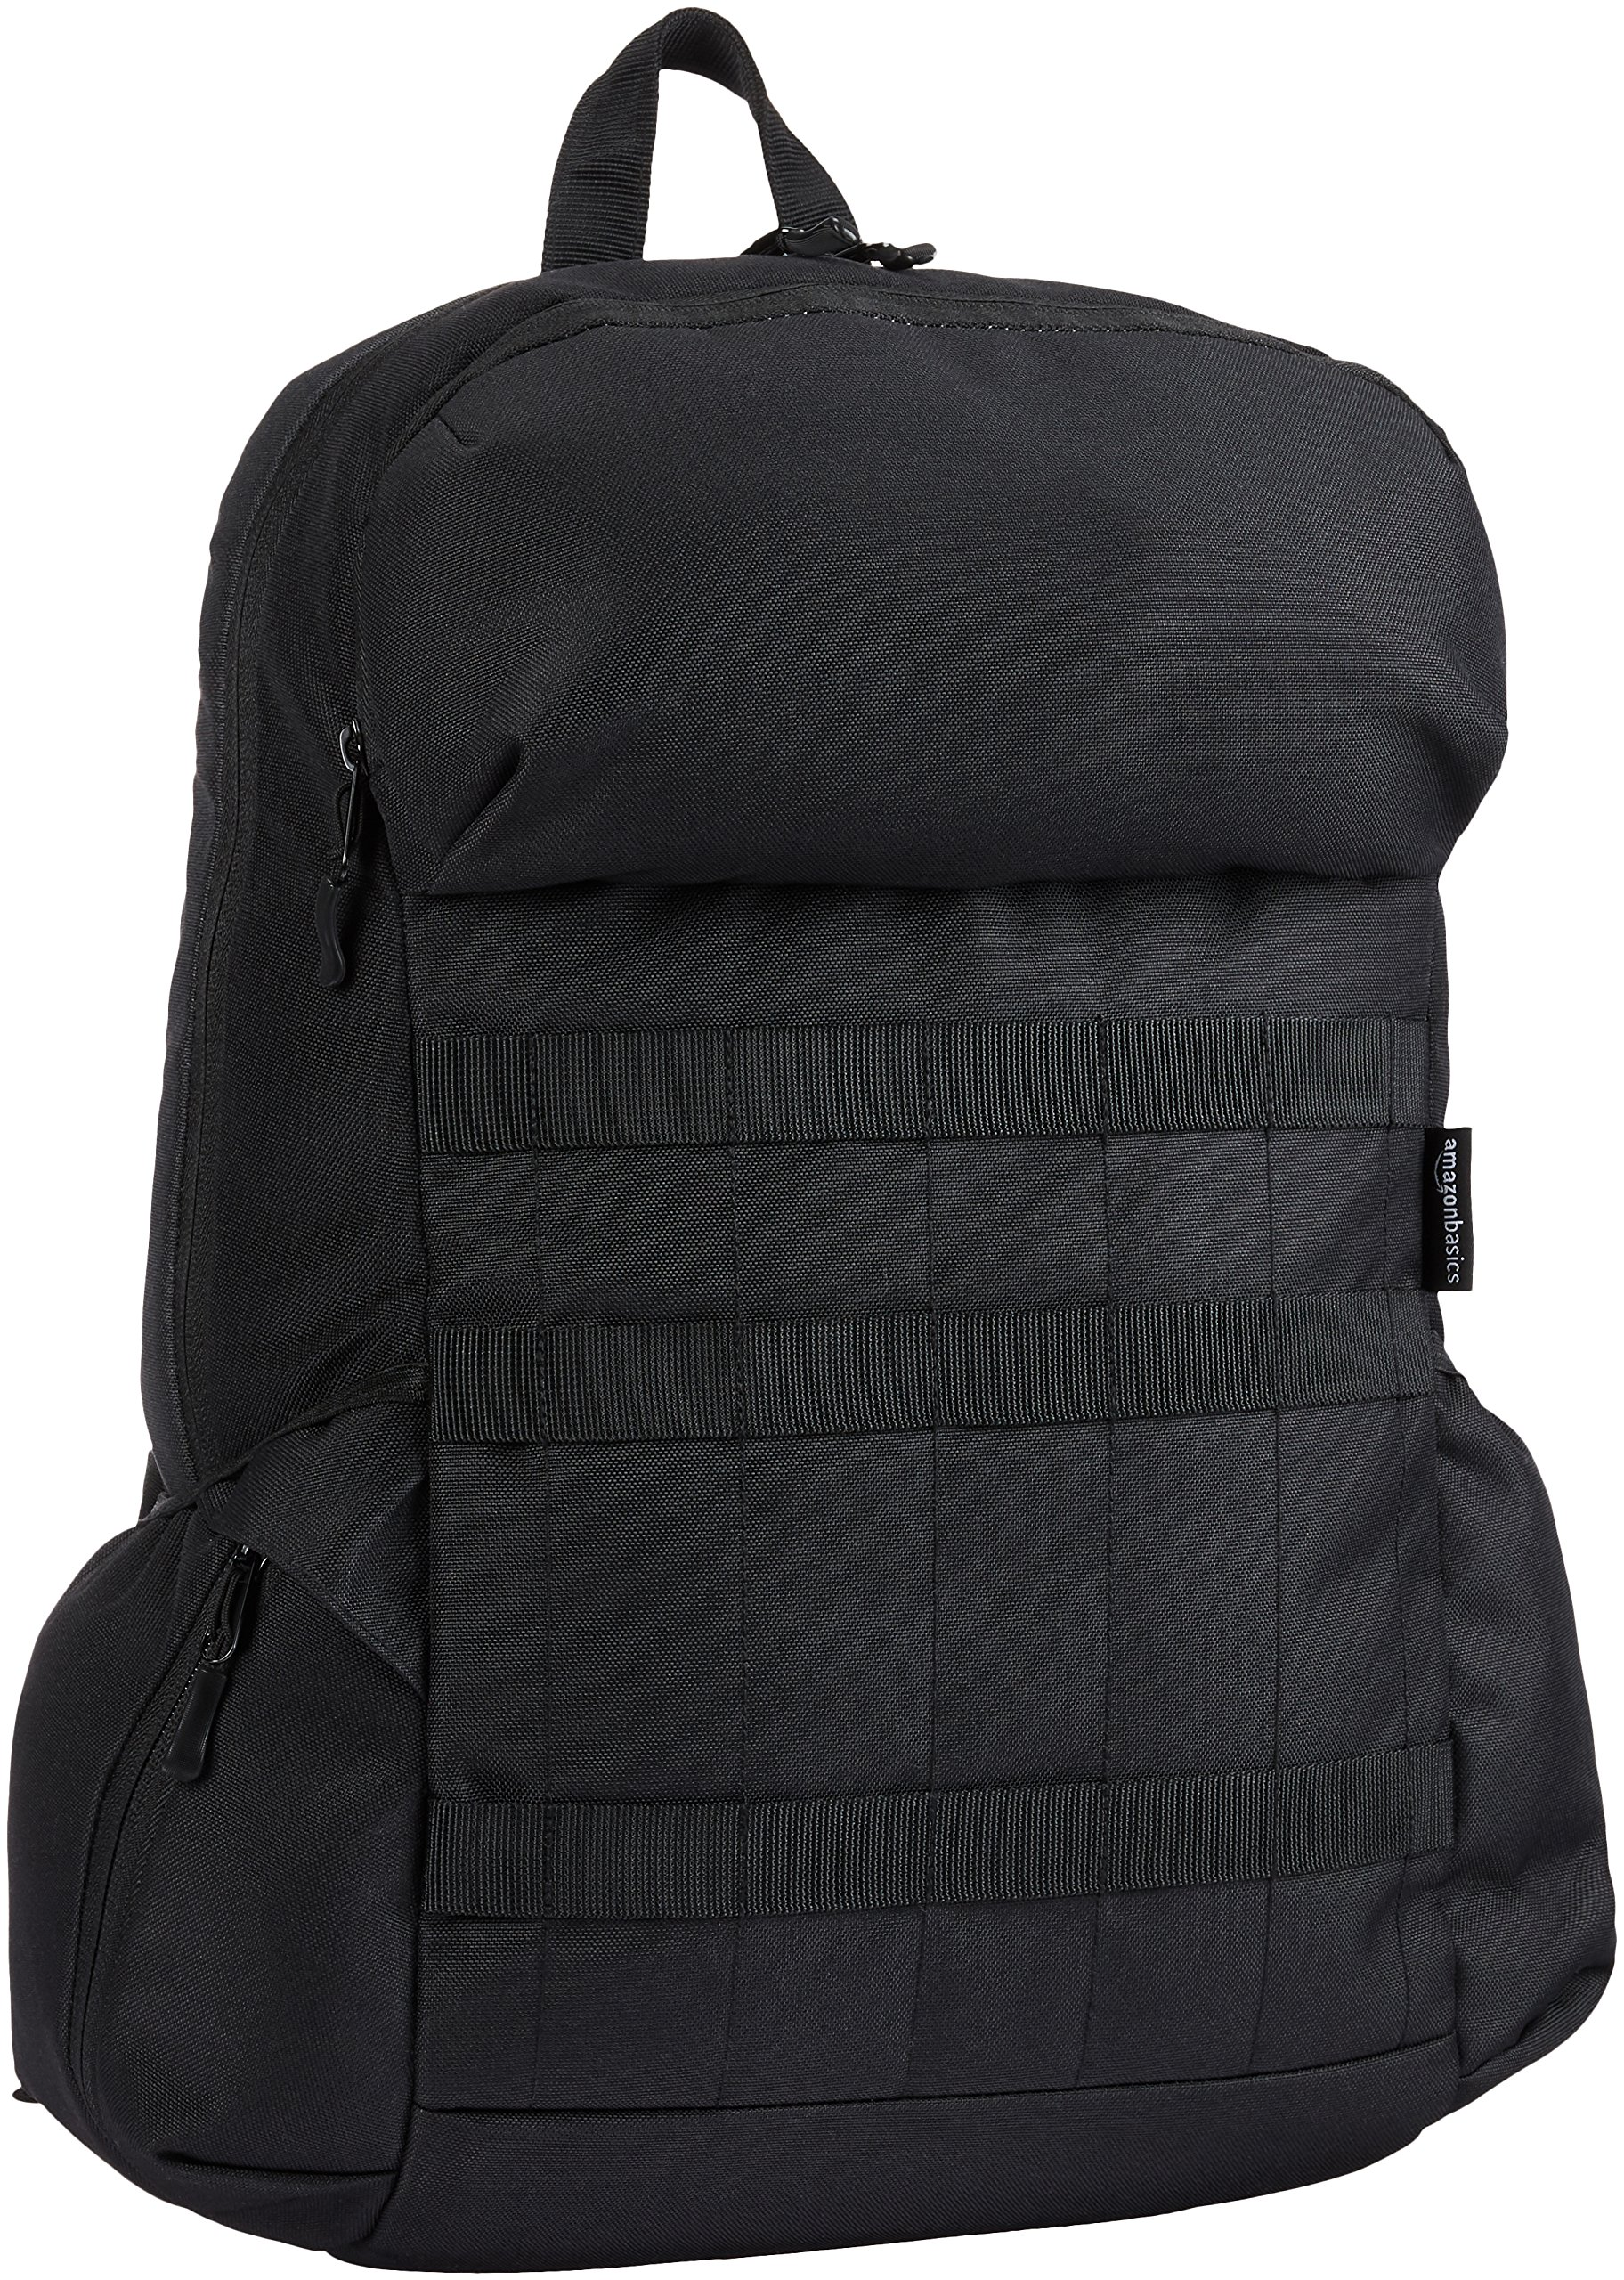 Amazon Basics Canvas Laptop Backpack Bag for up to 15 Inch Laptops - Black